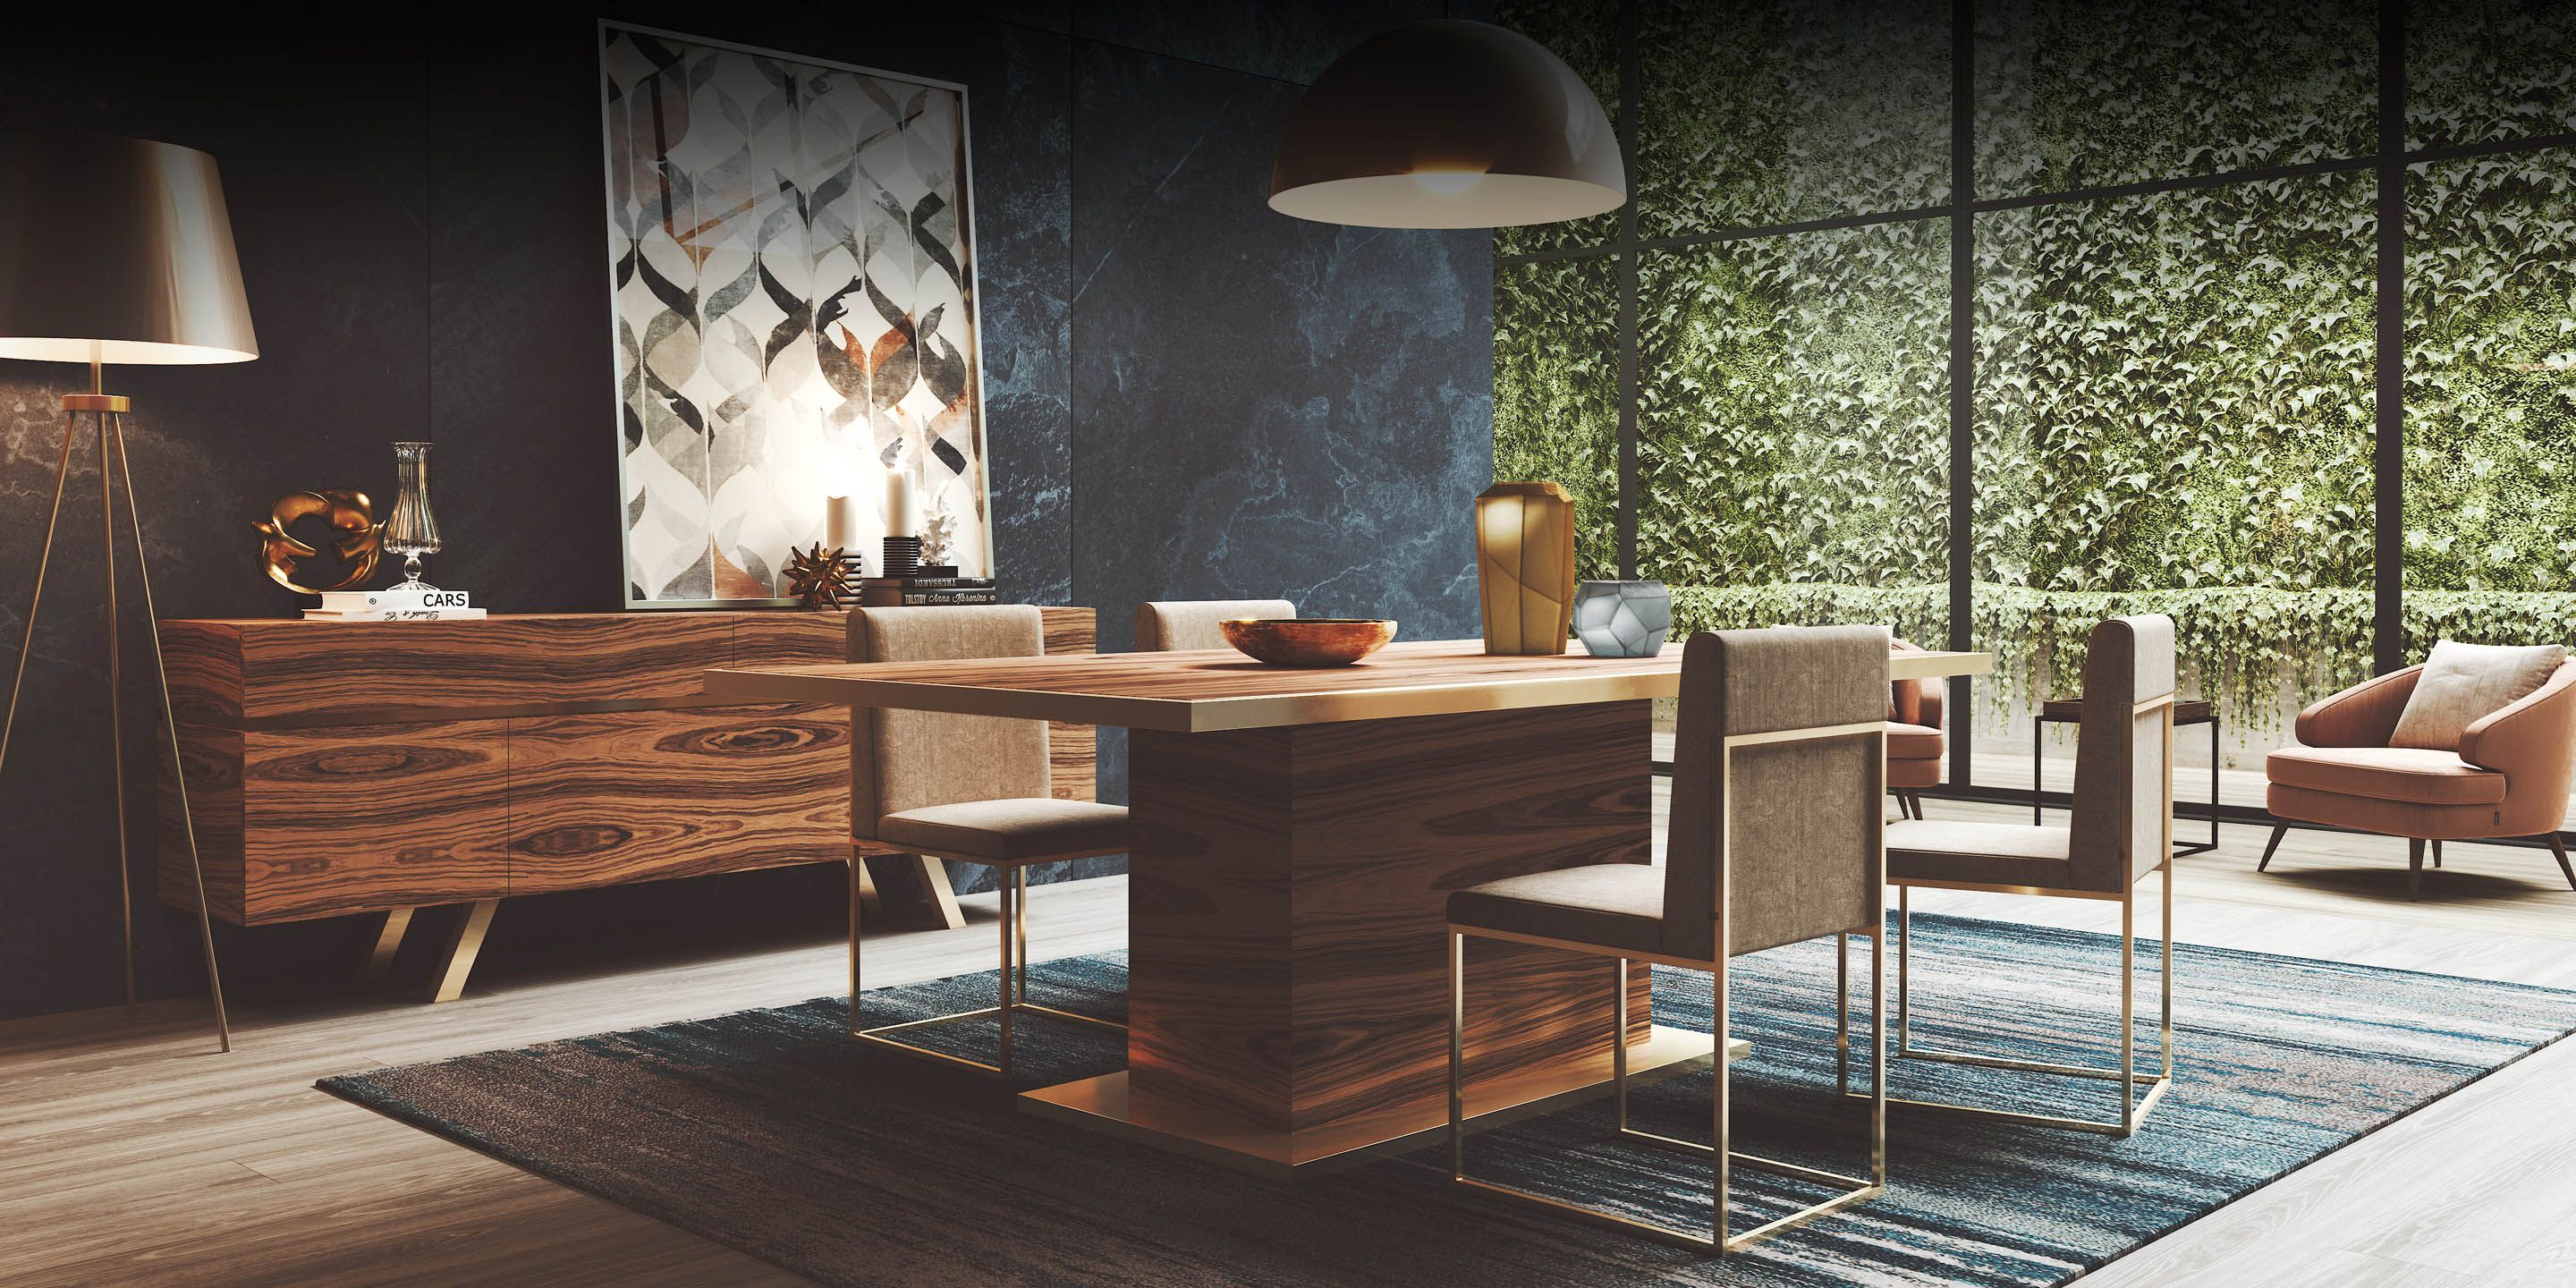 Laskasas decorate life www laskasas com dining room decor this dining room is an example of how to seamlessly combine natural wood tones